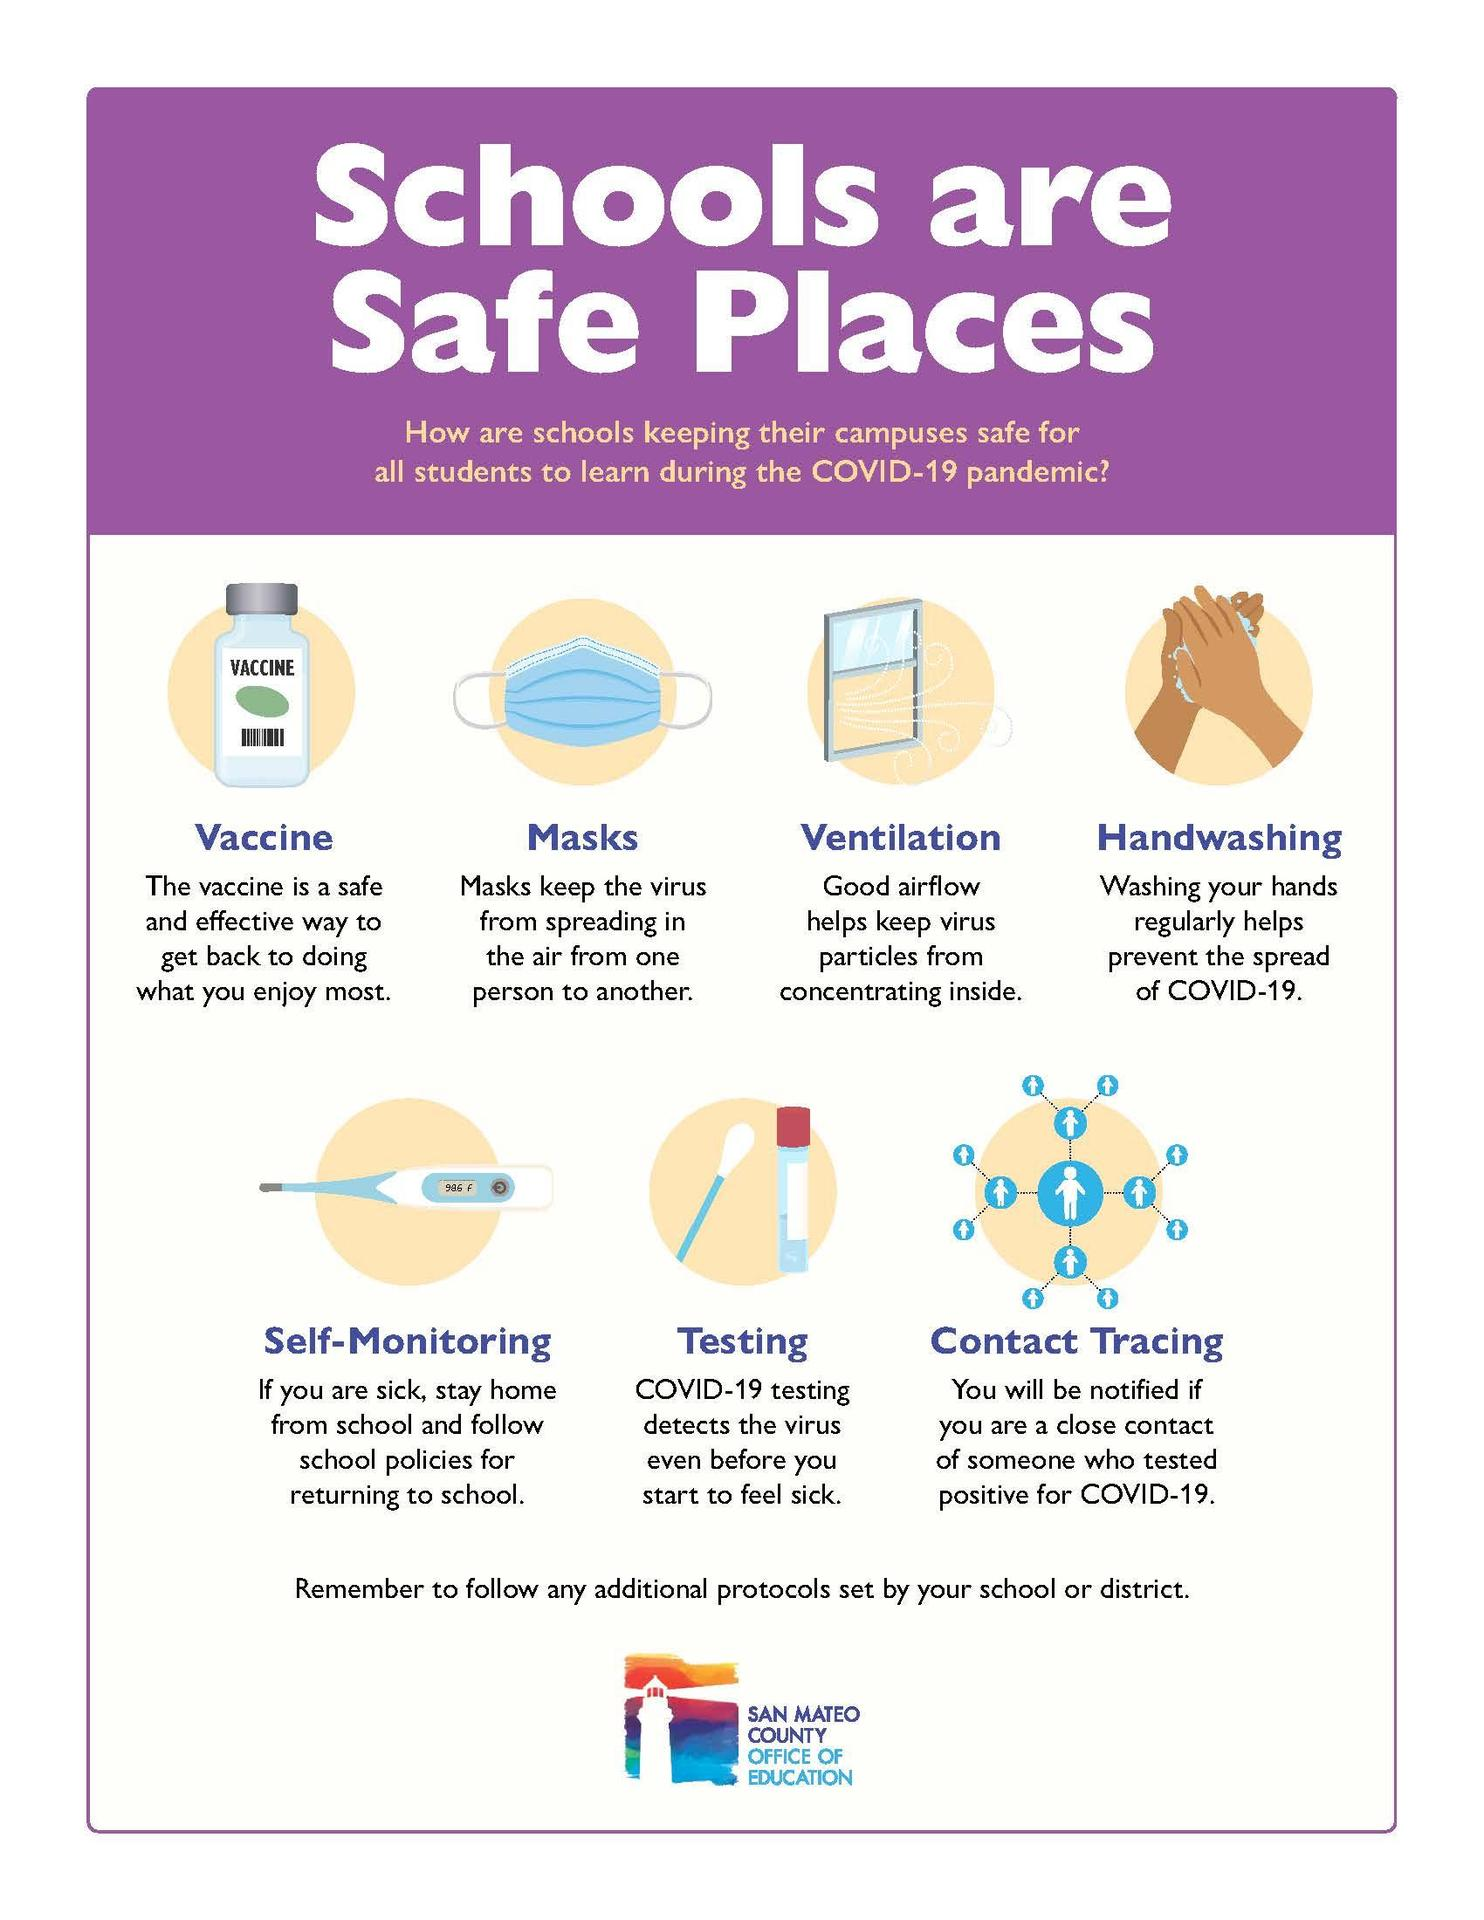 Schools Are Safe Places Image